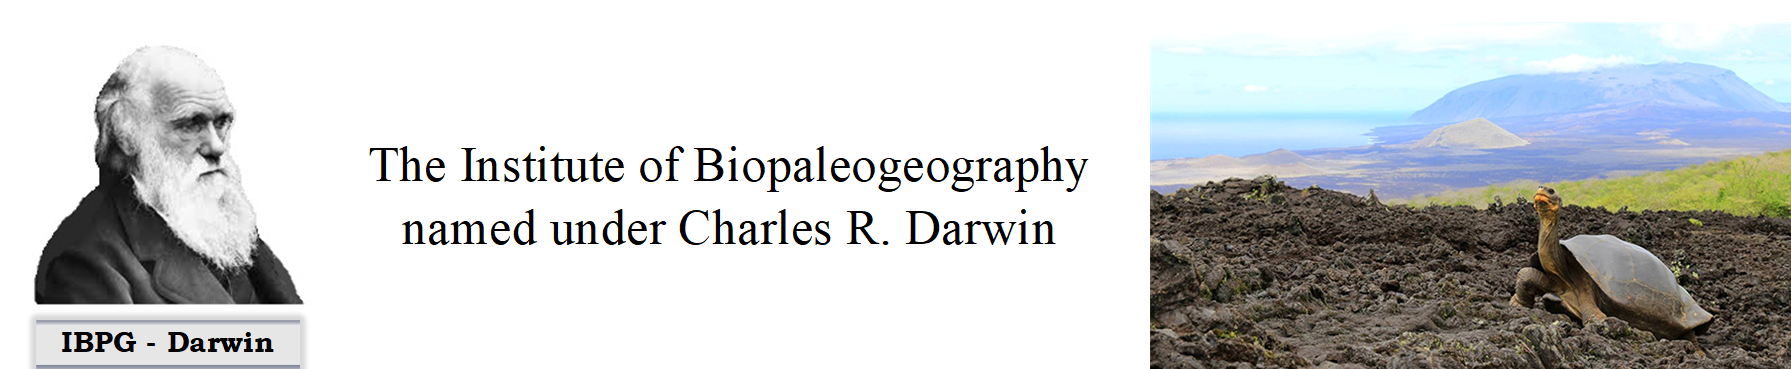 The Institute of Biopaleogeography named under Charles R. Darwin